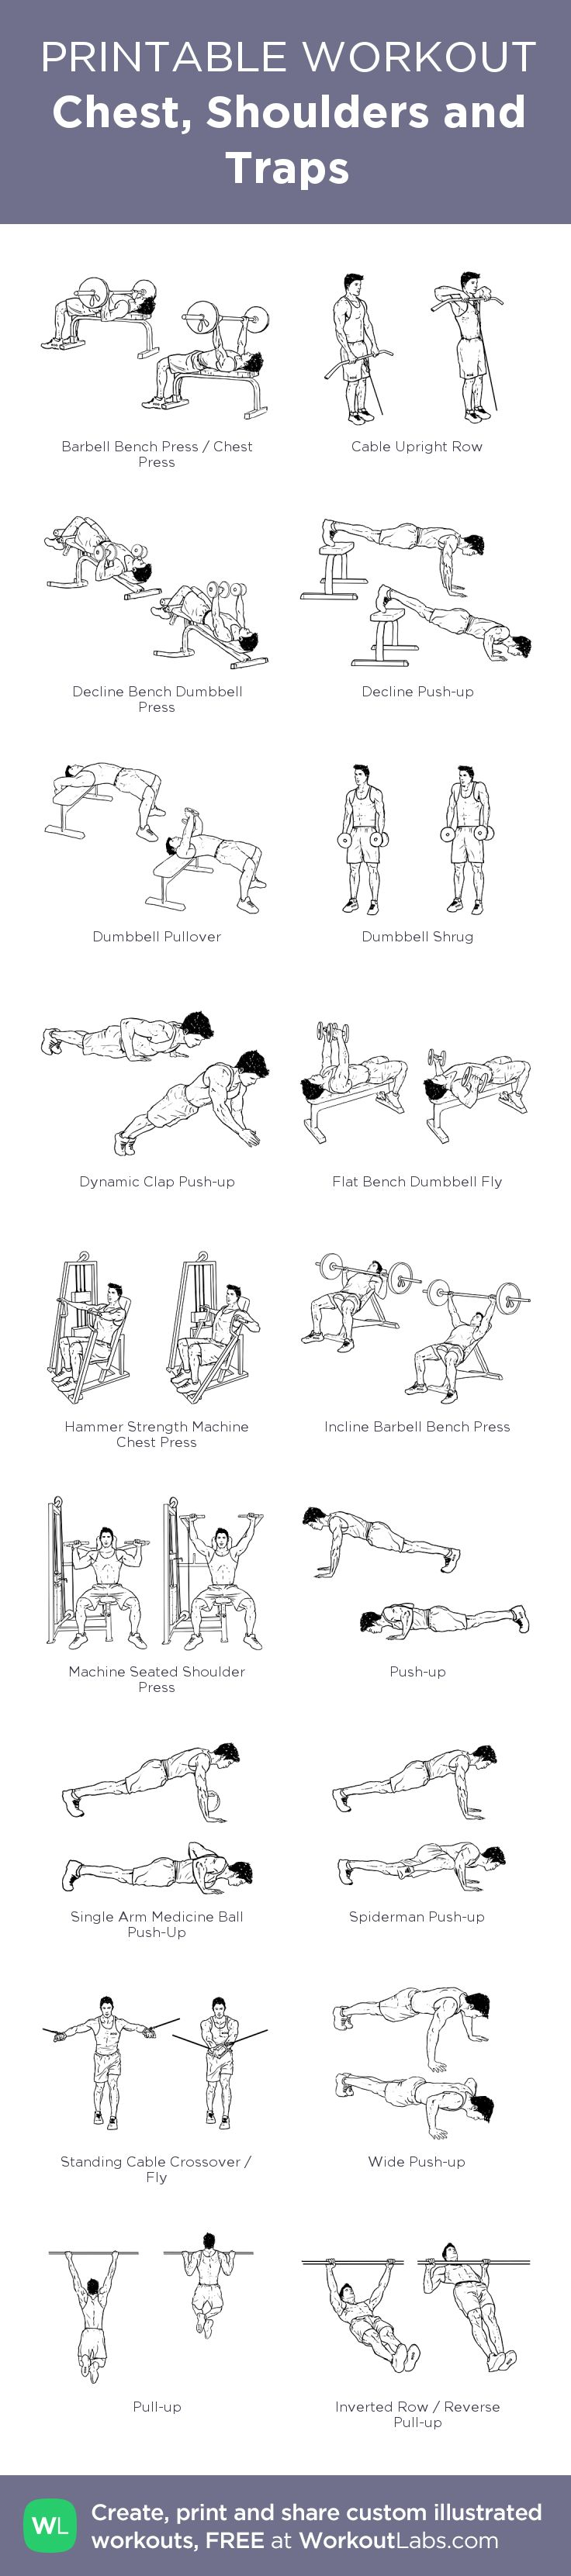 Chest, Shoulders and Traps:my visual workout created at WorkoutLabs.com • Click through to customize and download as a FREE PDF! #customworkout